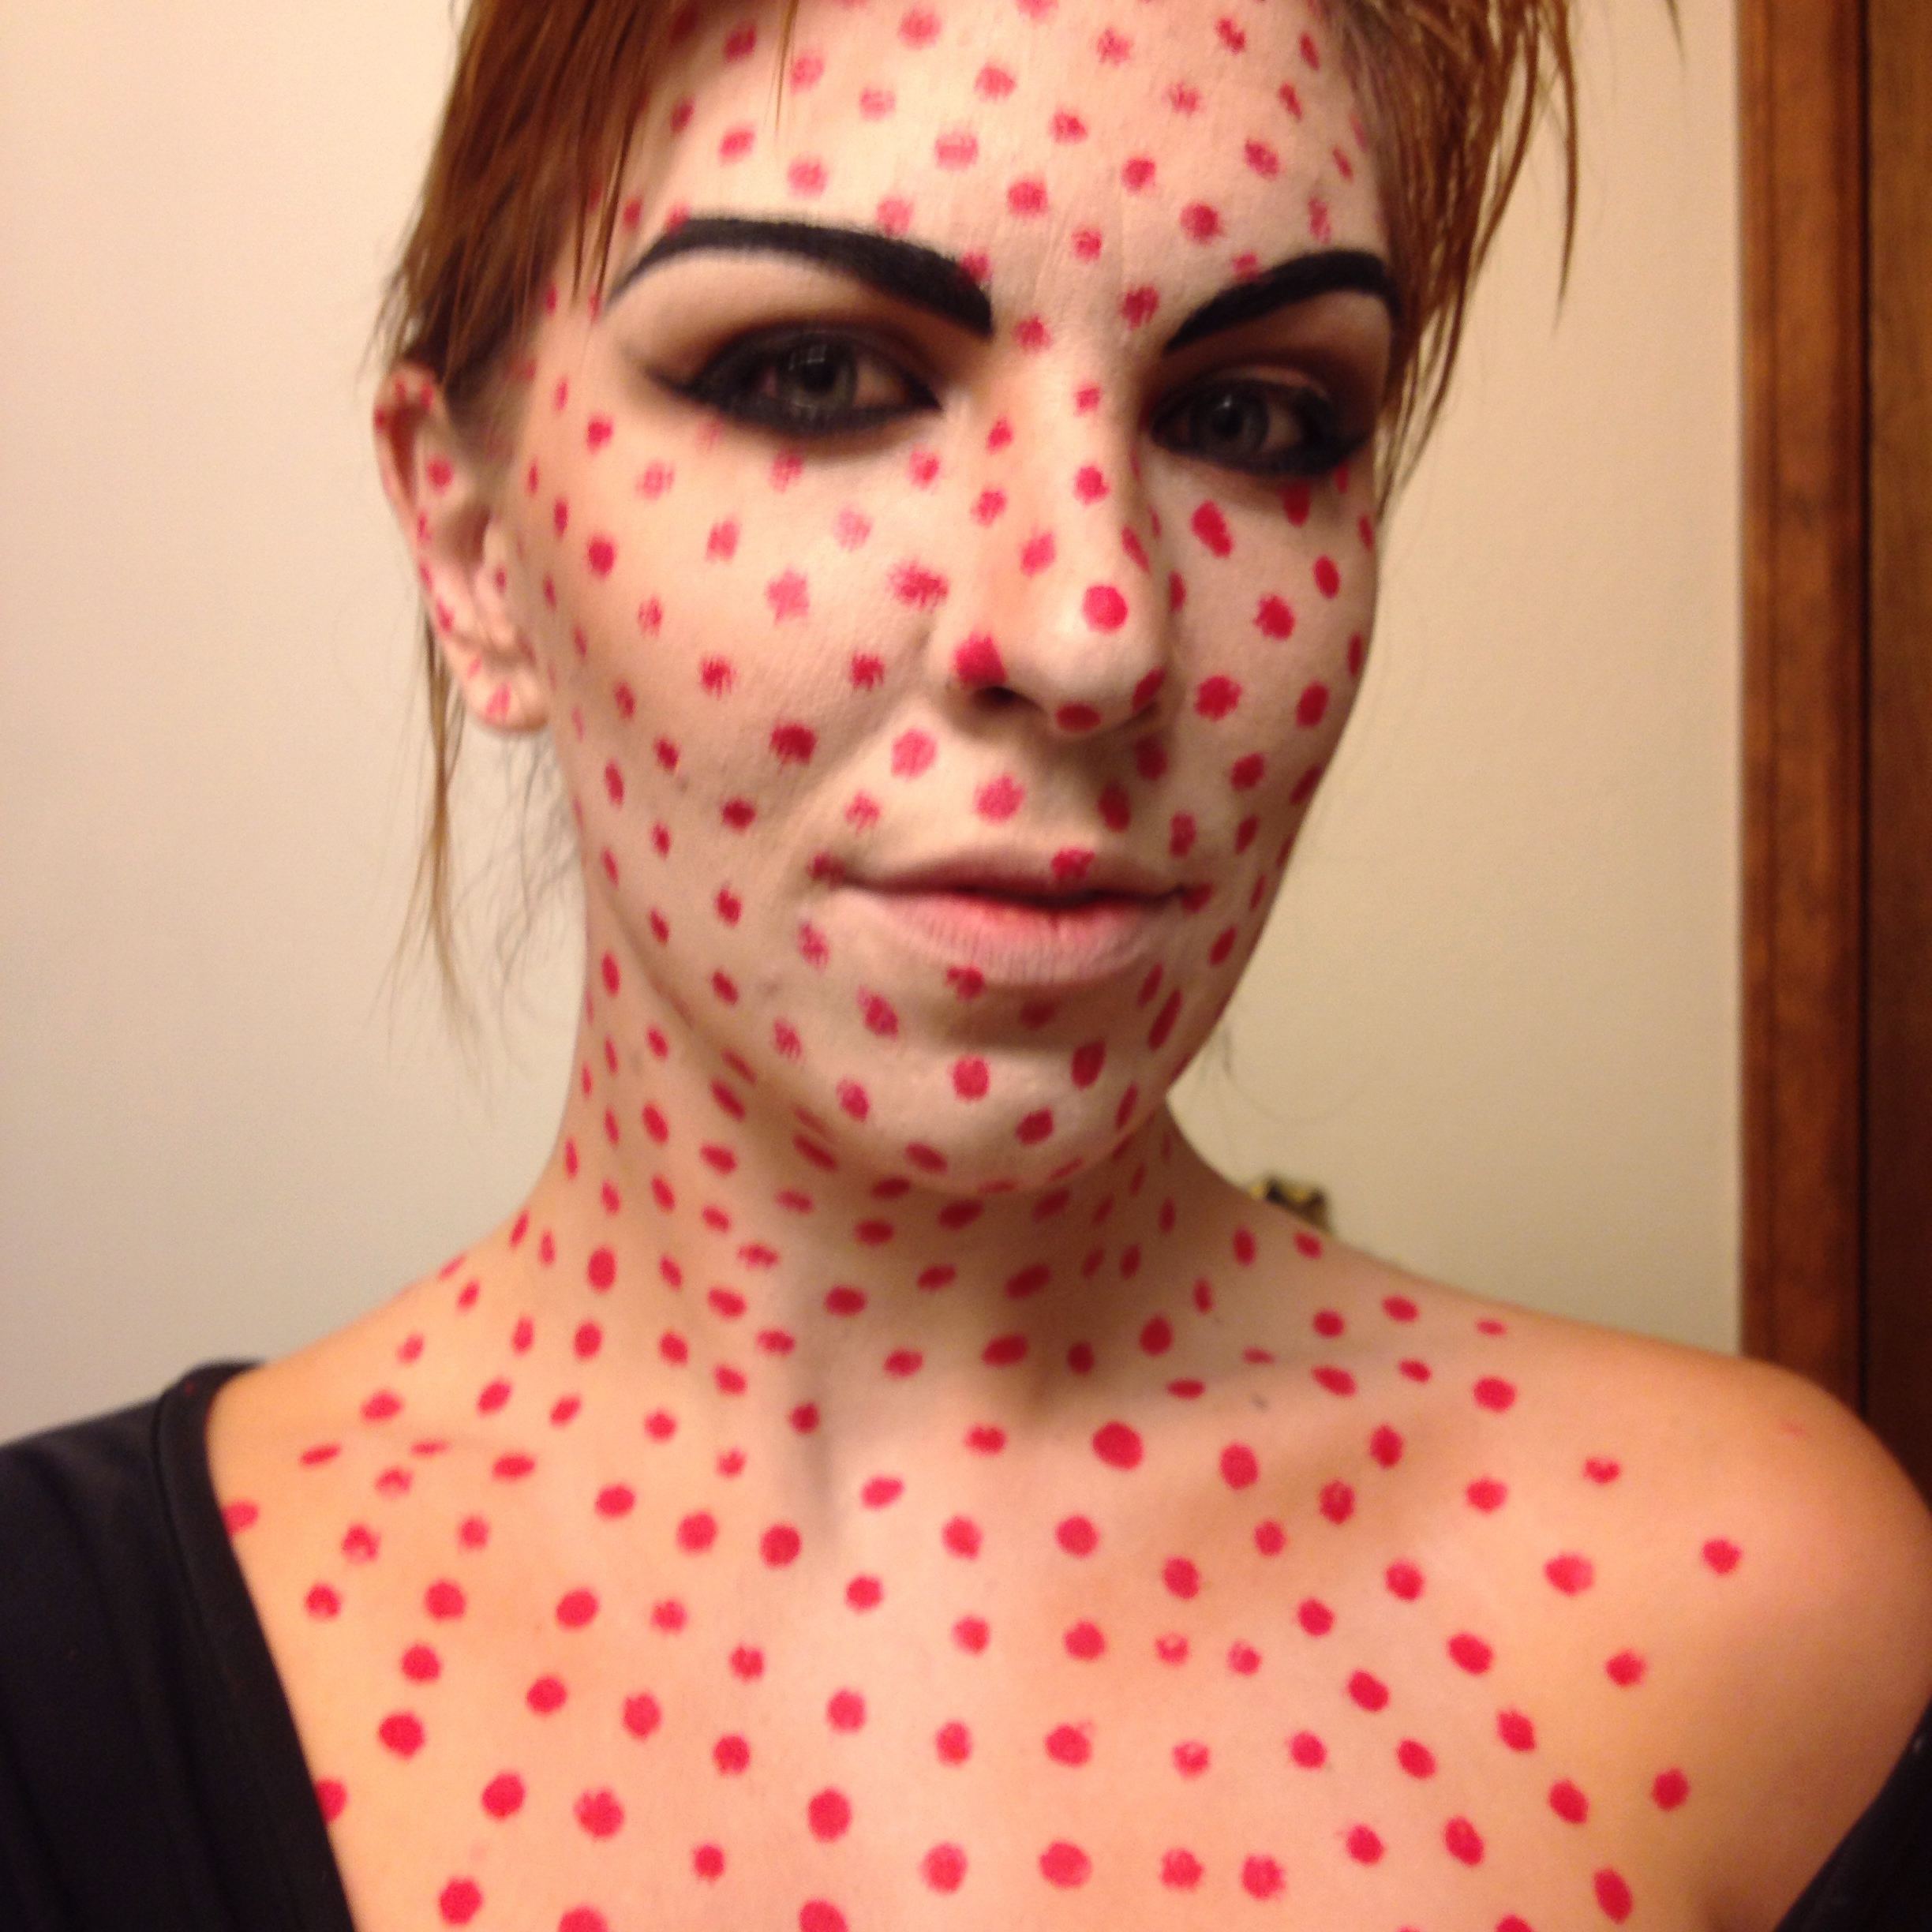 """Use a red face paint such as Mehron or Ben Nye, and a small crease brush to create dots on your face aka """"crappy printing"""". Make sure to create lines with the dots to keep it consistent."""